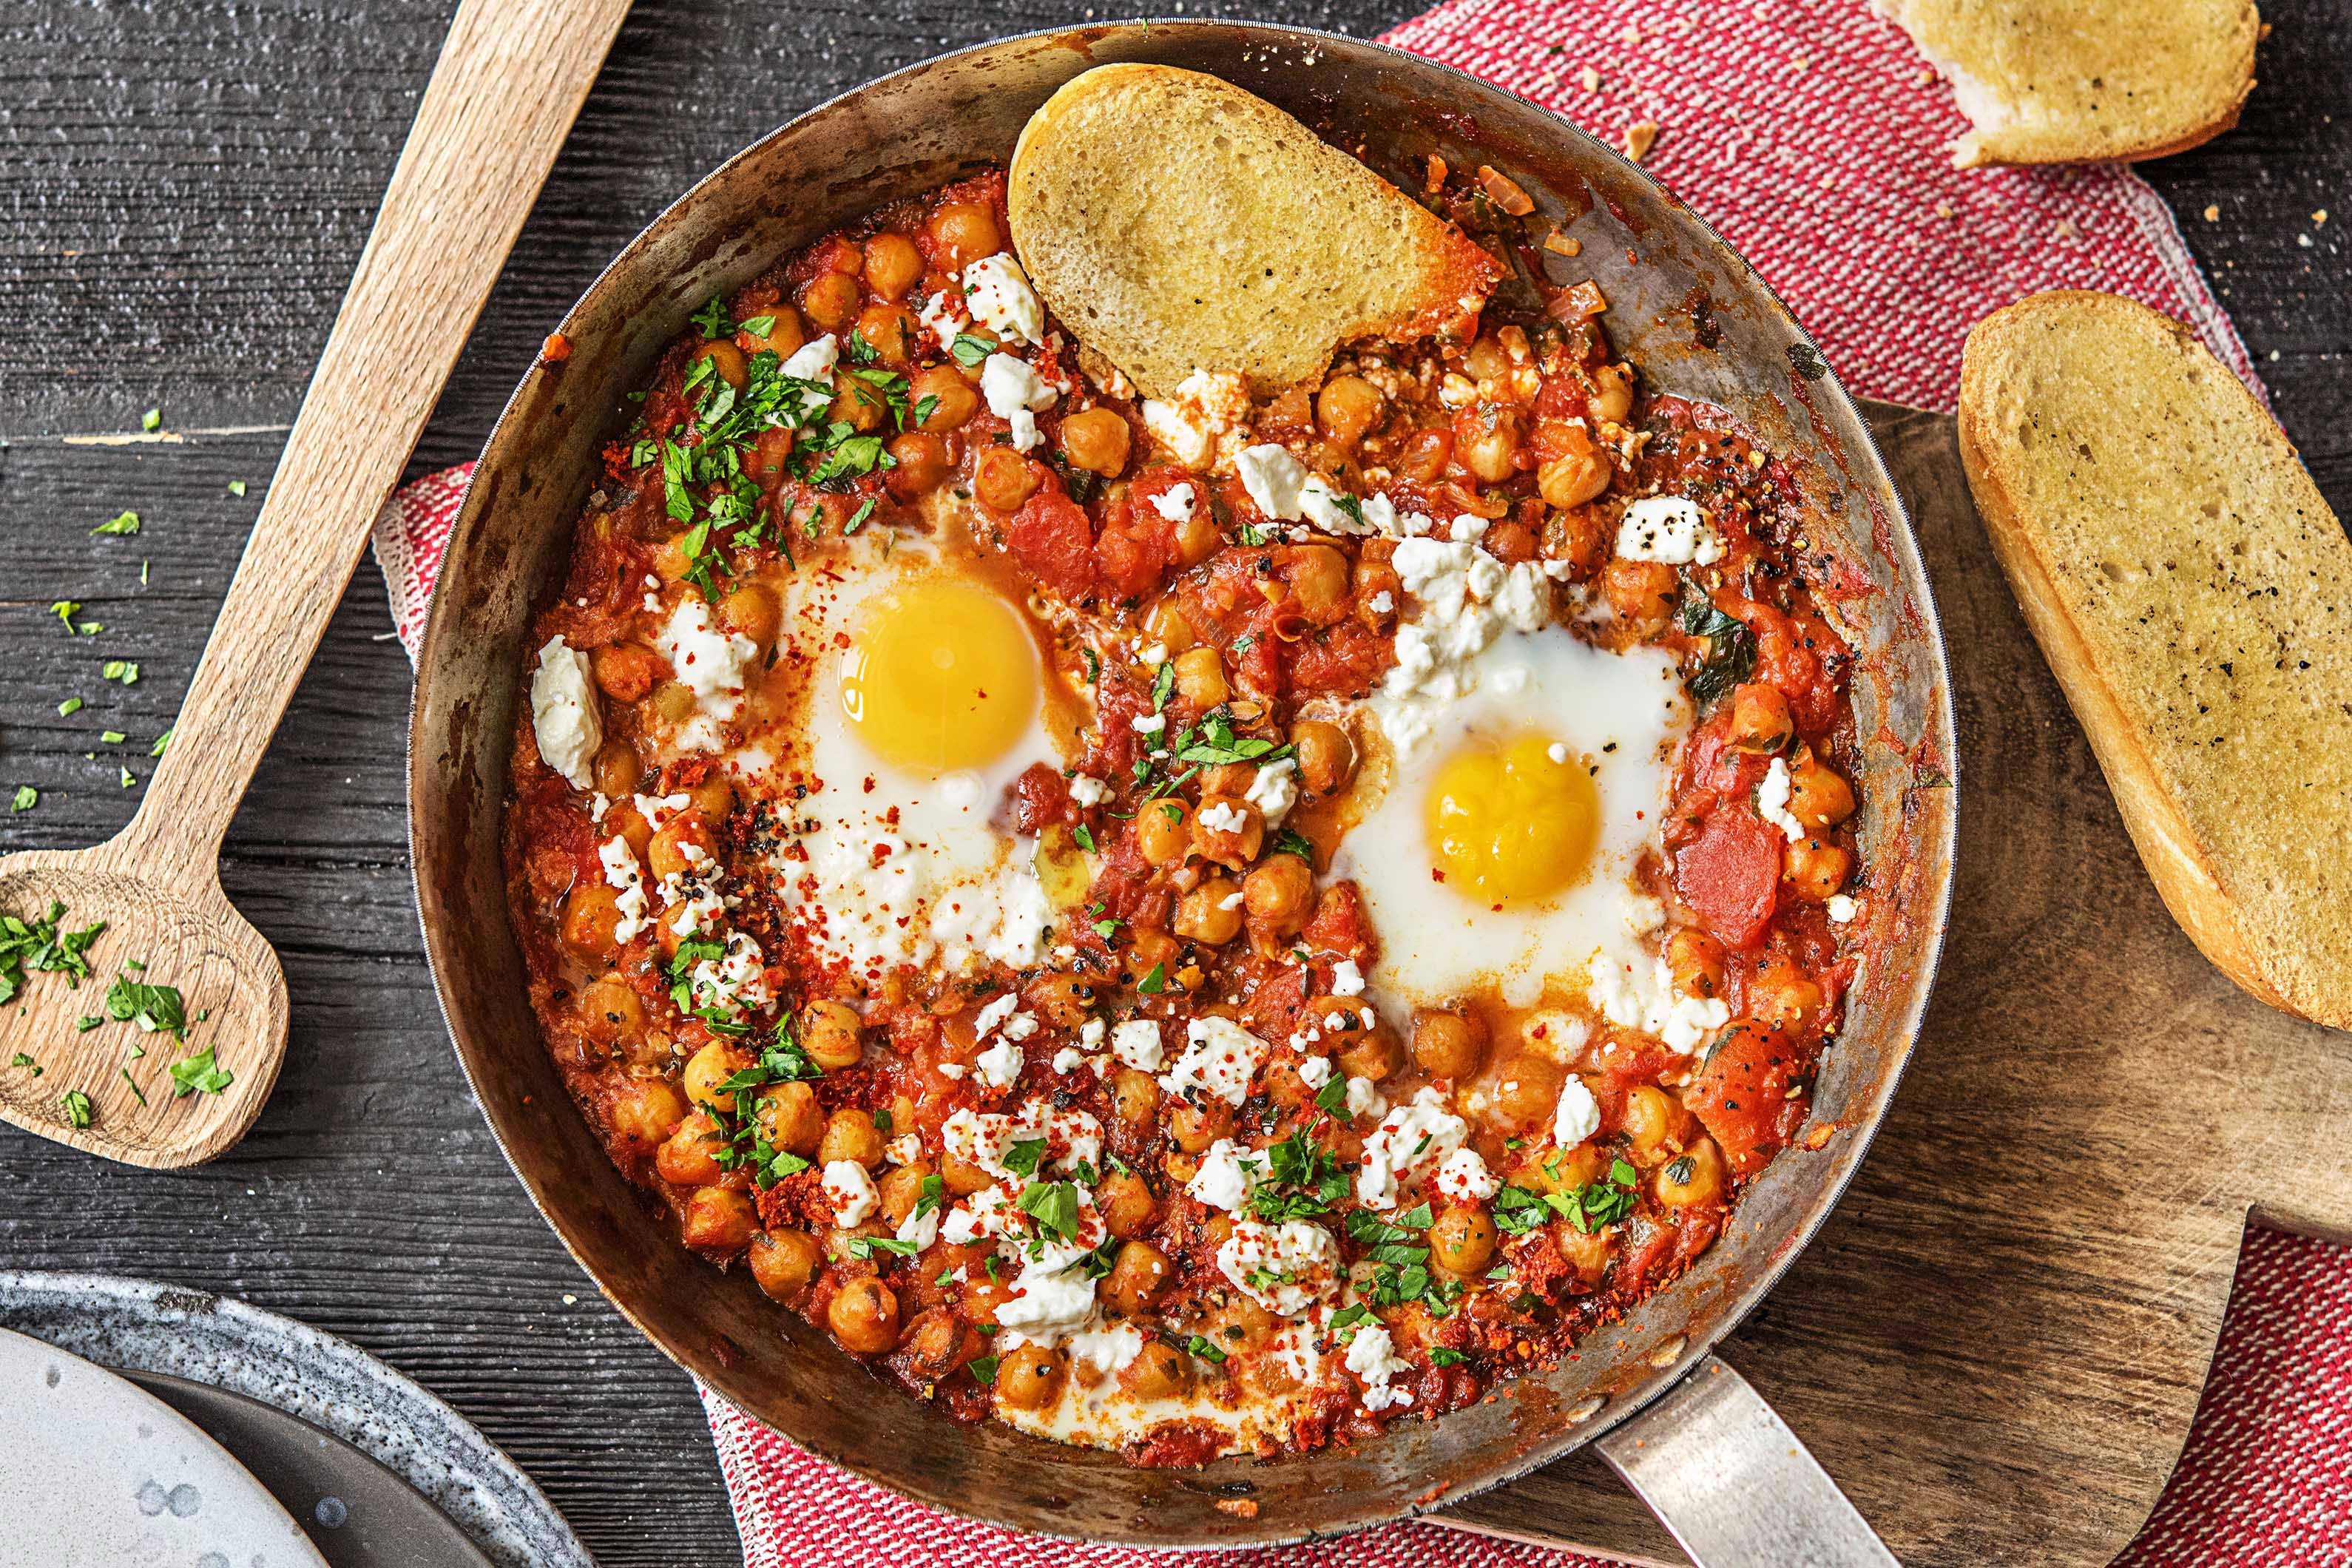 Cozy Chickpea and Egg Skillet